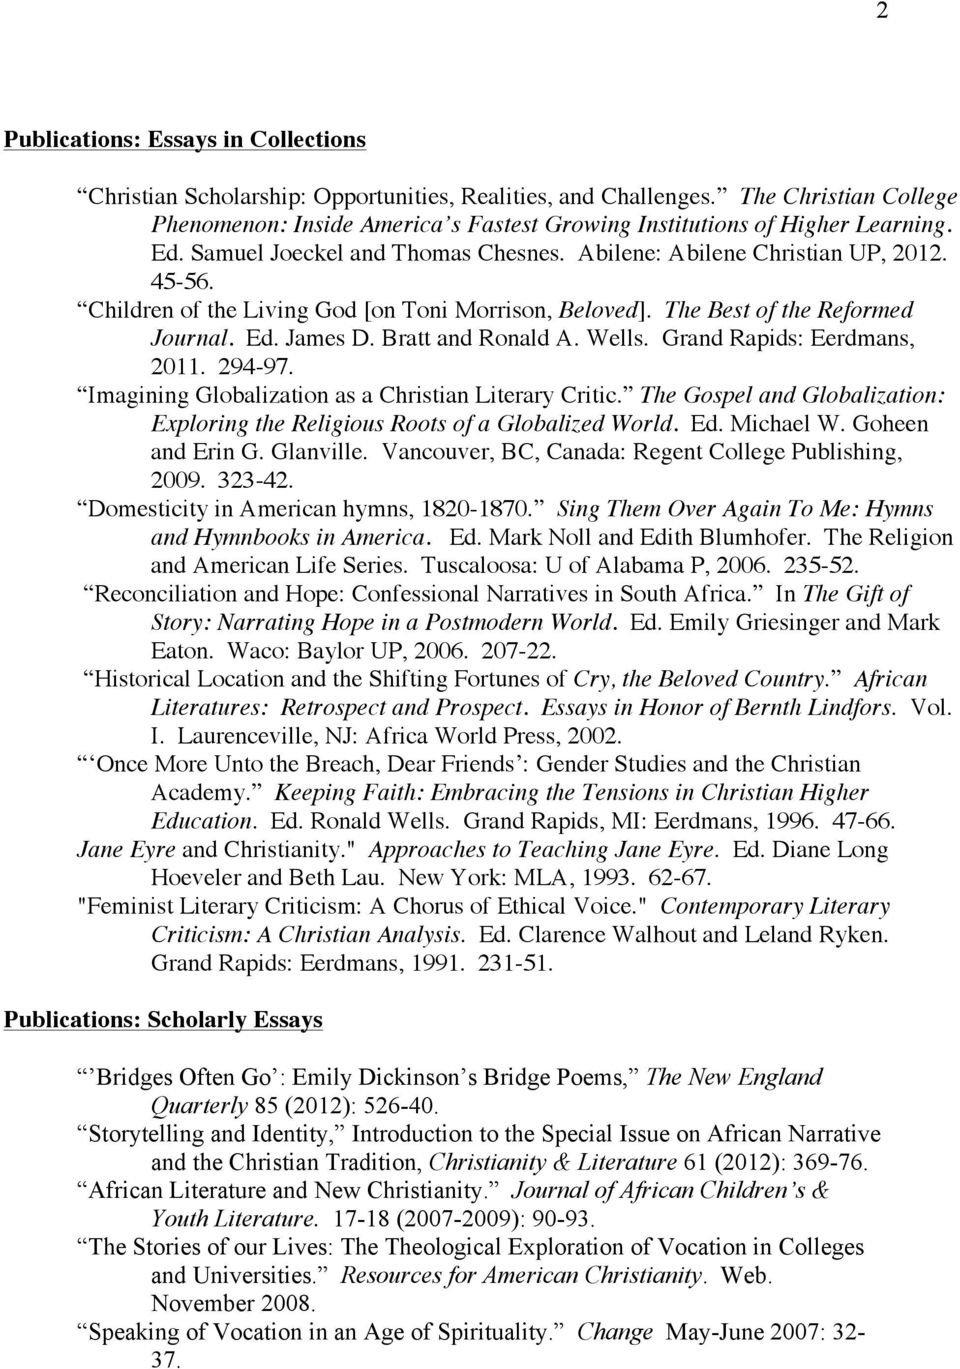 """the grand inquisitor poem theology religion essay You are encouraged to read the full text of """"the grand inquisitor"""" even though  you may find the language  grand inquisitor this, he explains, is a fantasy, a  poem, although unwritten  dostoevsky's own faith derives its strength from the  fact that he has himself passed through  psychological and at his theological  best."""